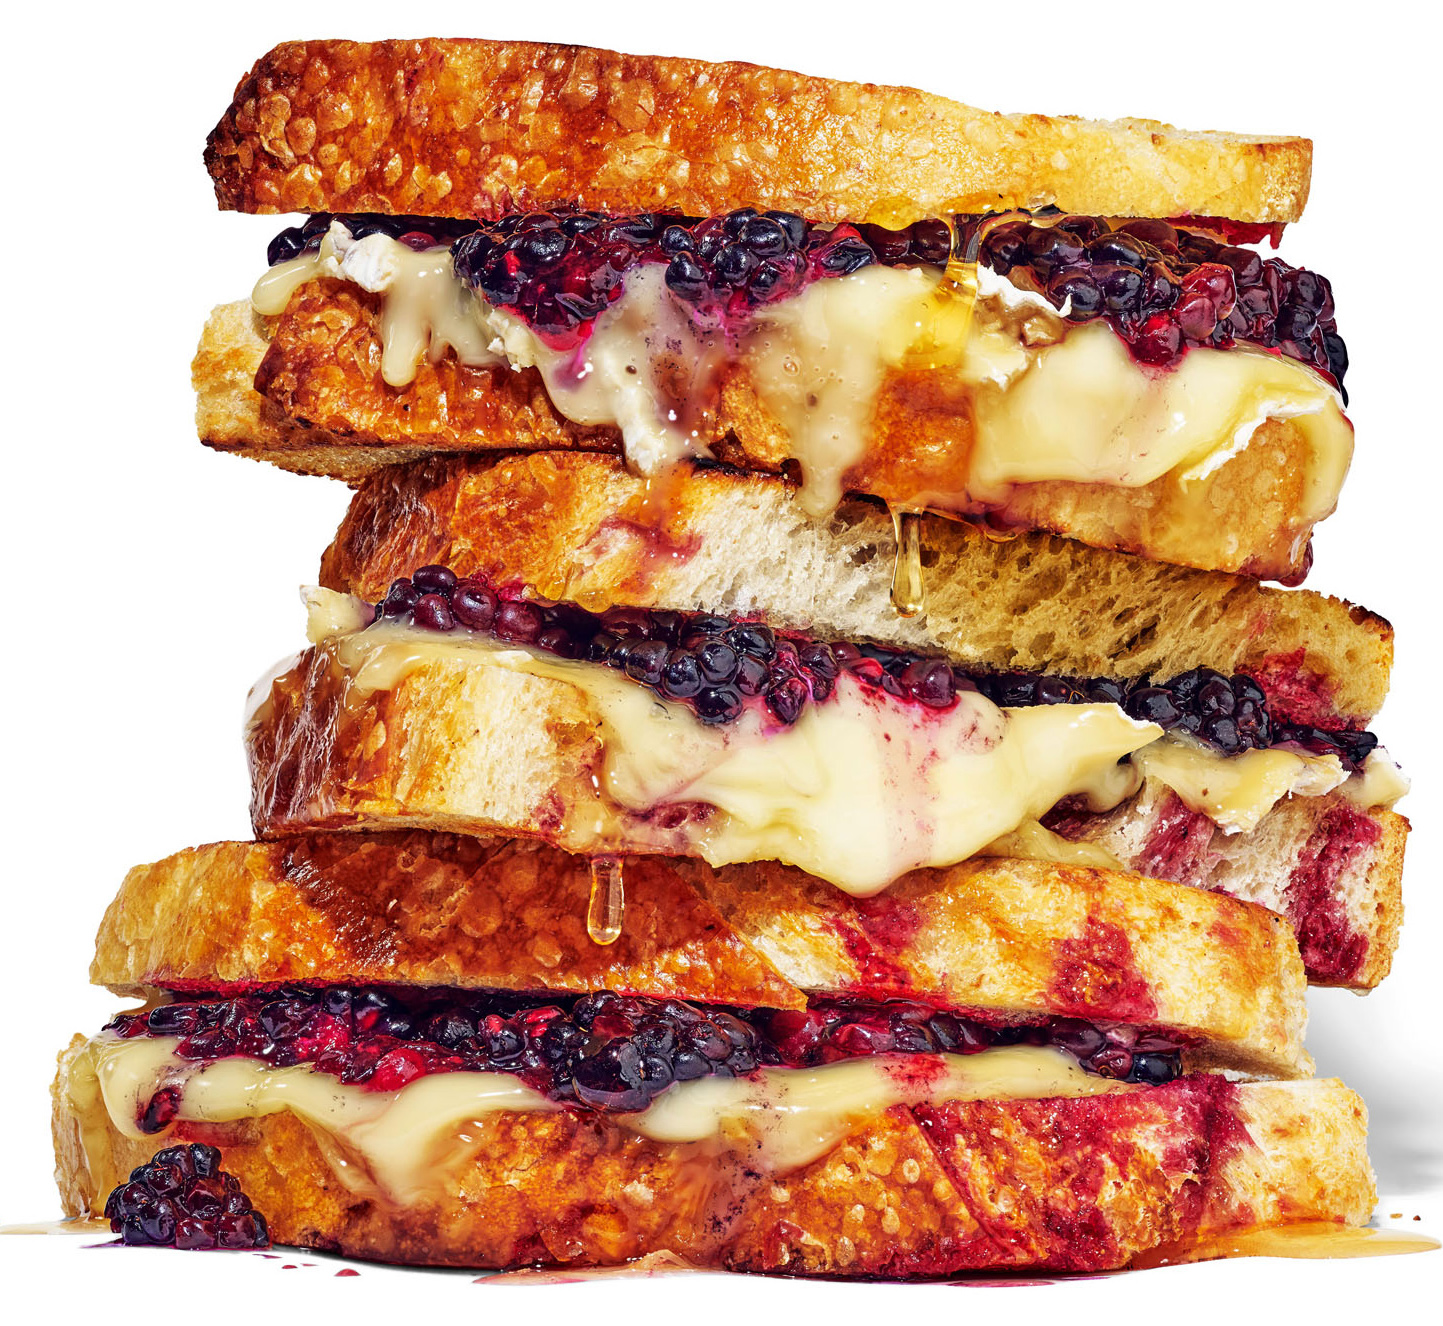 blackberry toasted cheese sandwiches